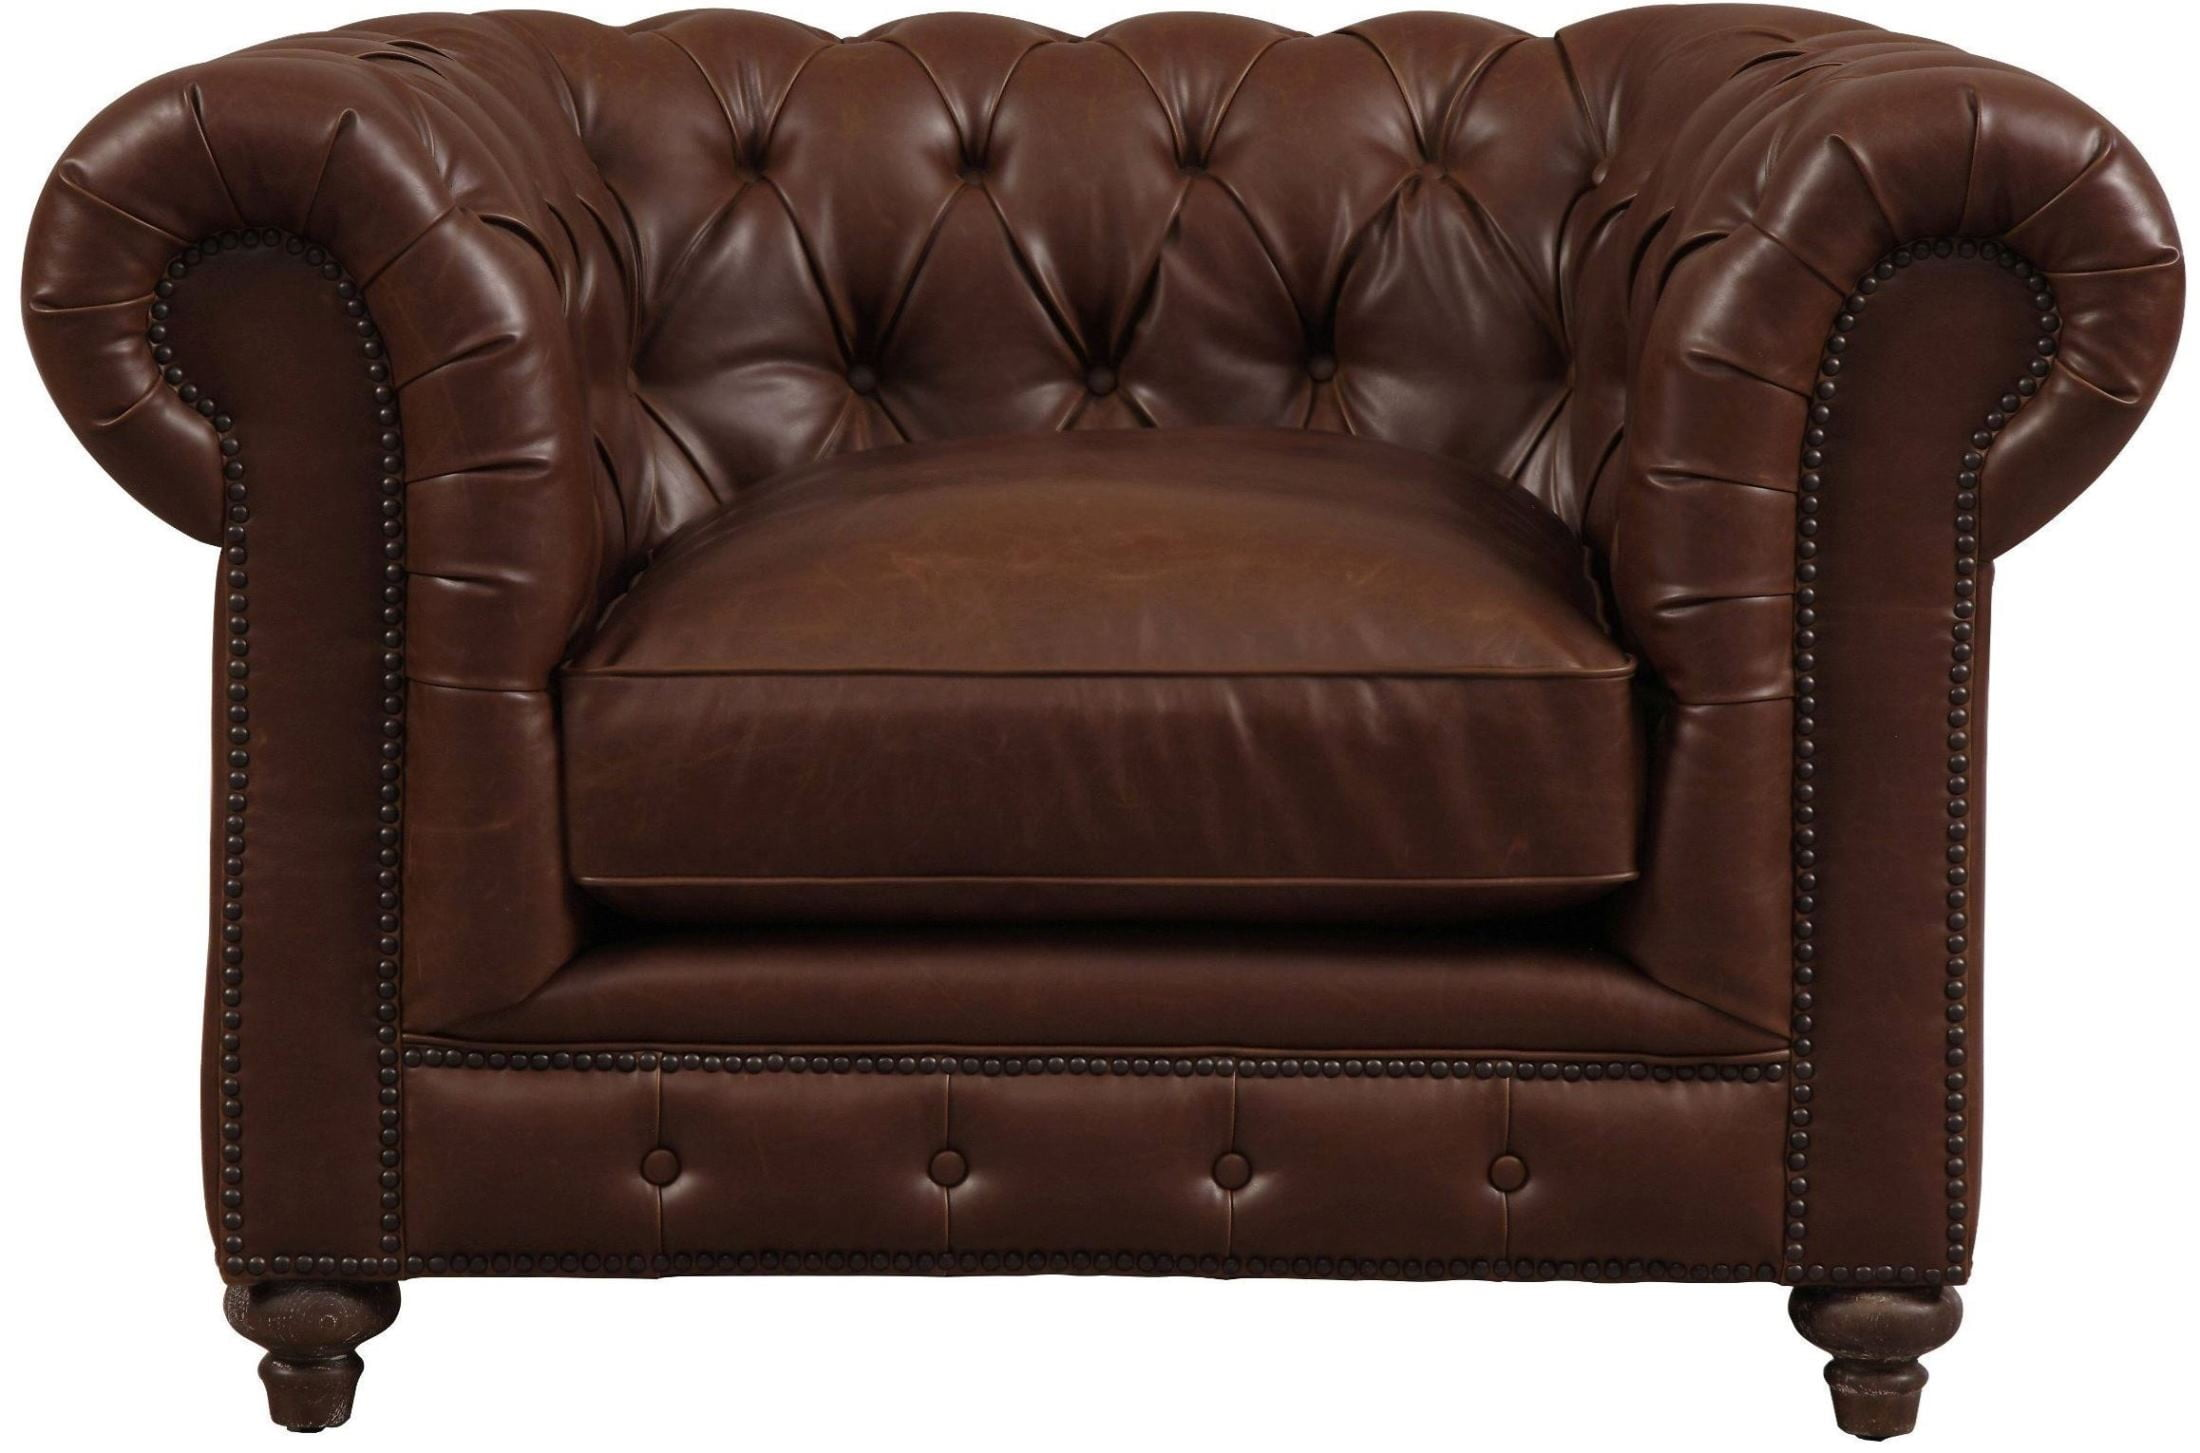 Durango Antique Brown Leather Club Chair from TOV